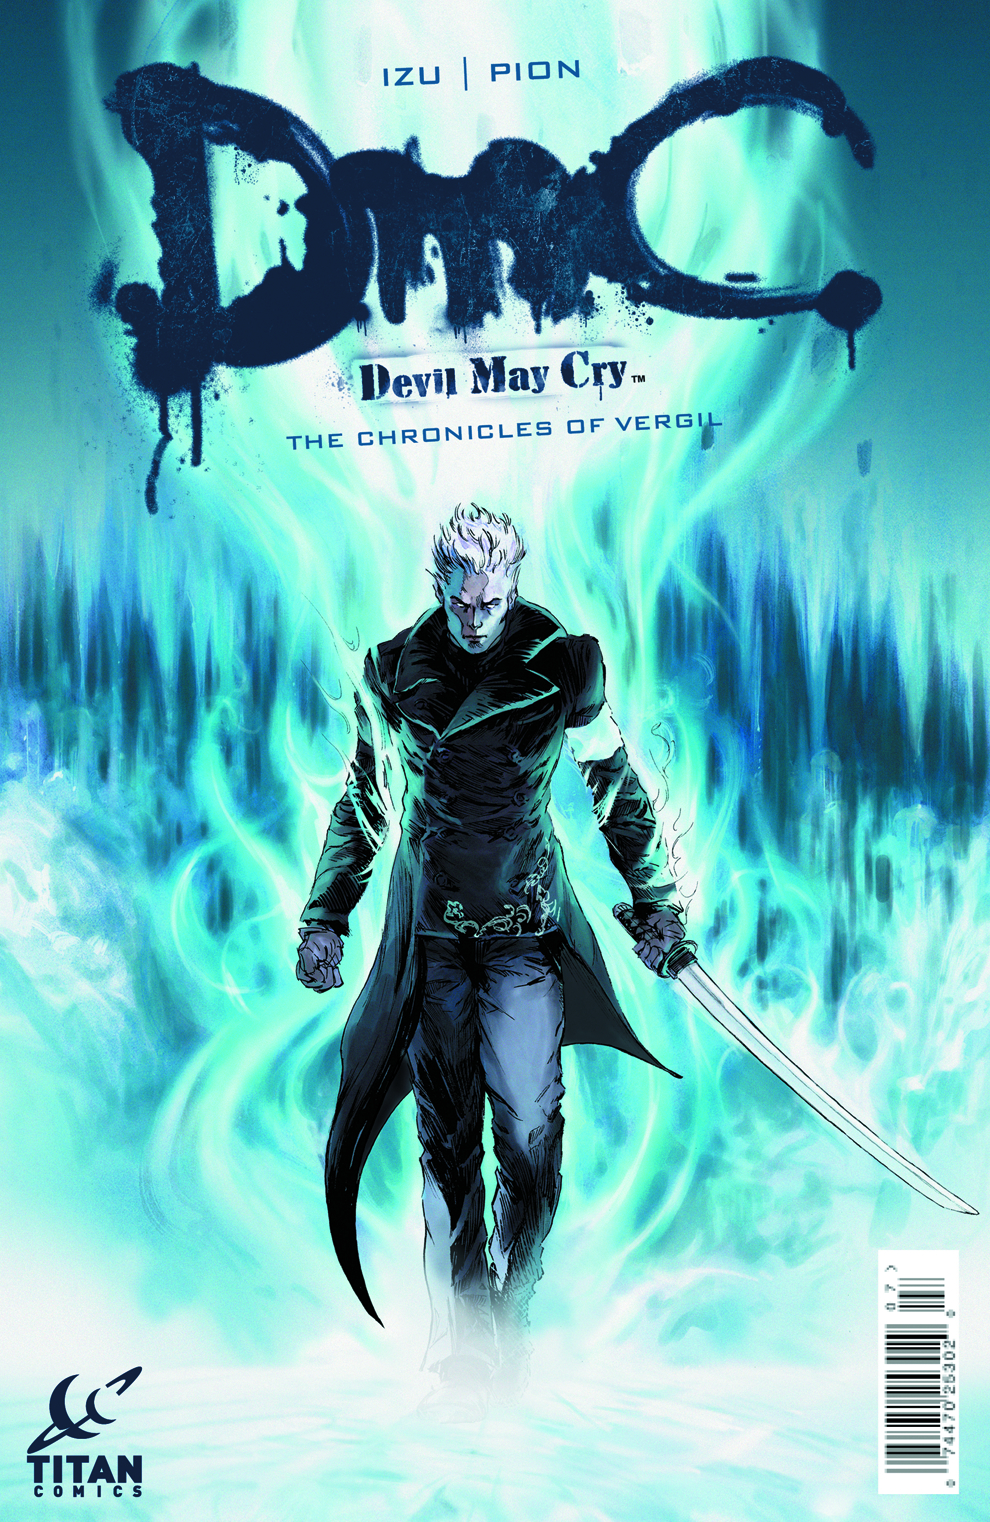 DMC DEVIL MAY CRY VERGIL CHRONICLES #1